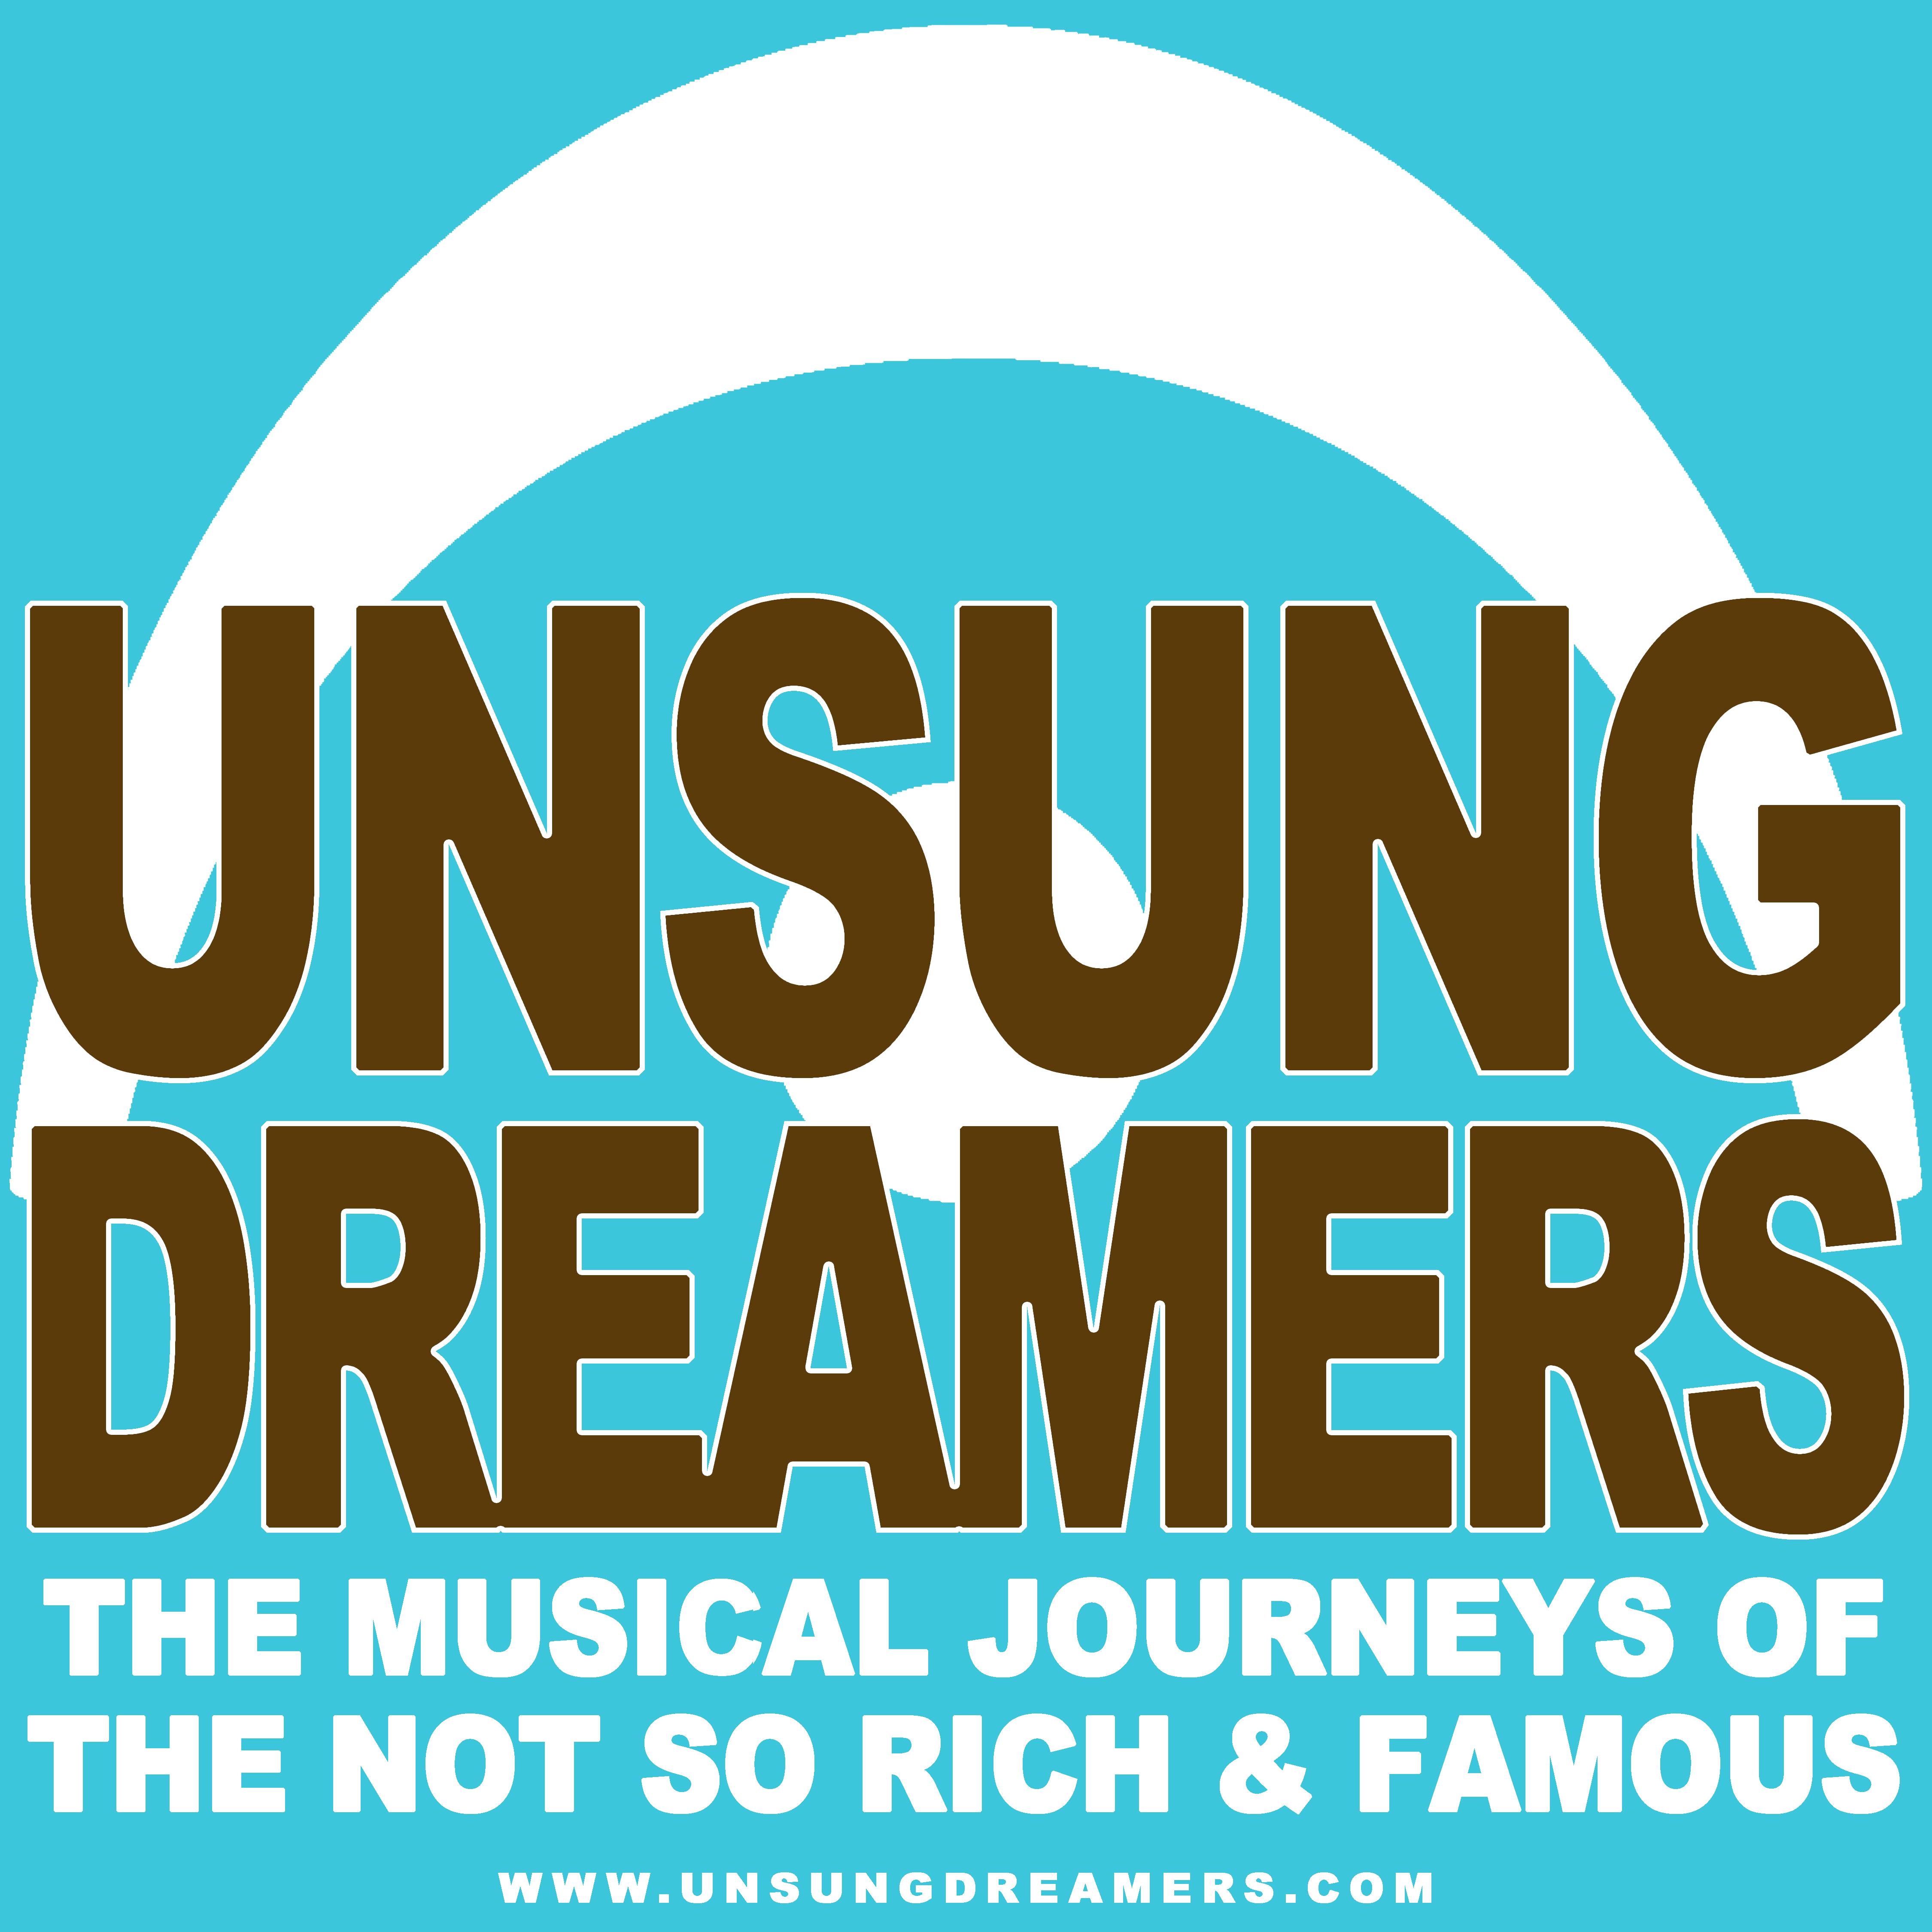 Unsung Dreamers - The Musical Journeys of the Not-So-Rich & Famous show art